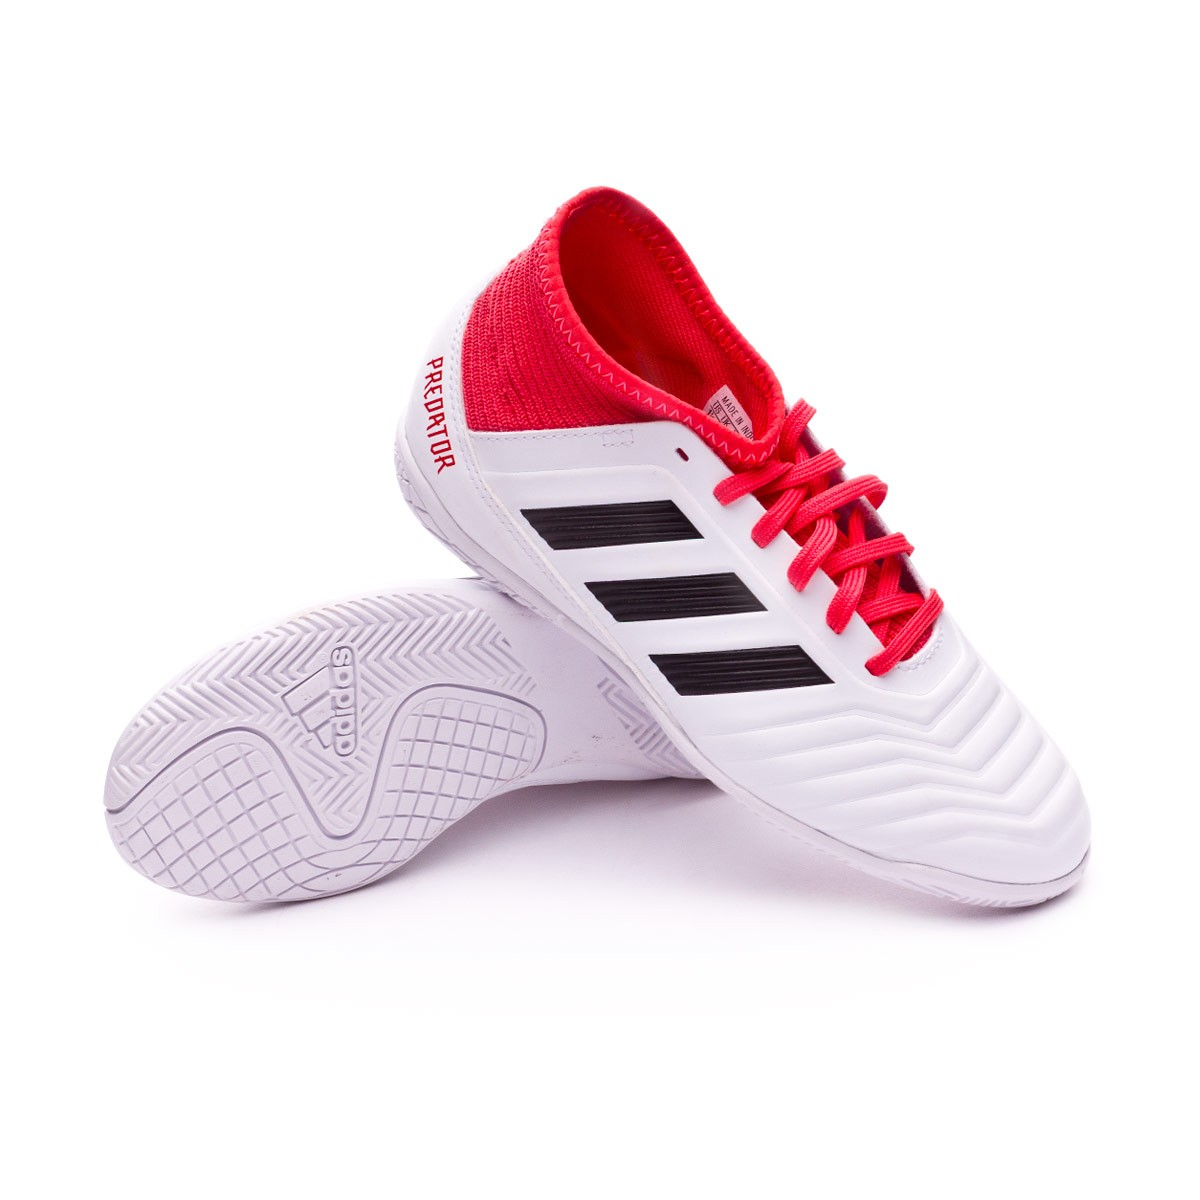 8e8bcc6d1f5 adidas Kids Predator Tango 18.3 IN Futsal Boot. White-Core black-Real coral  ...